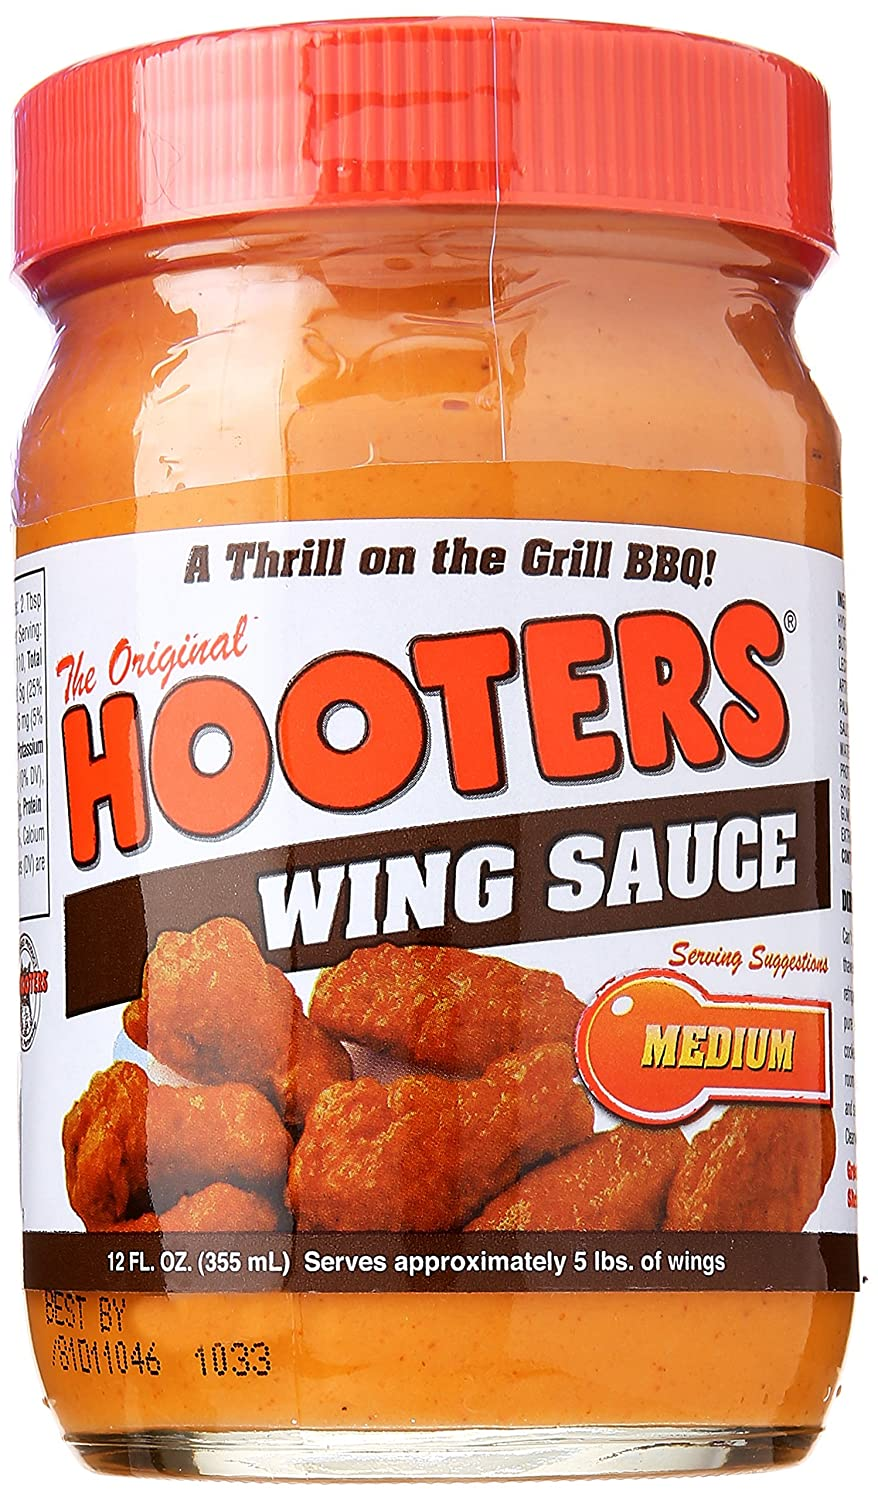 Hooters Wing Sauce Medium 12 oz 2 - 4 years warranty PACK Manufacturer direct delivery